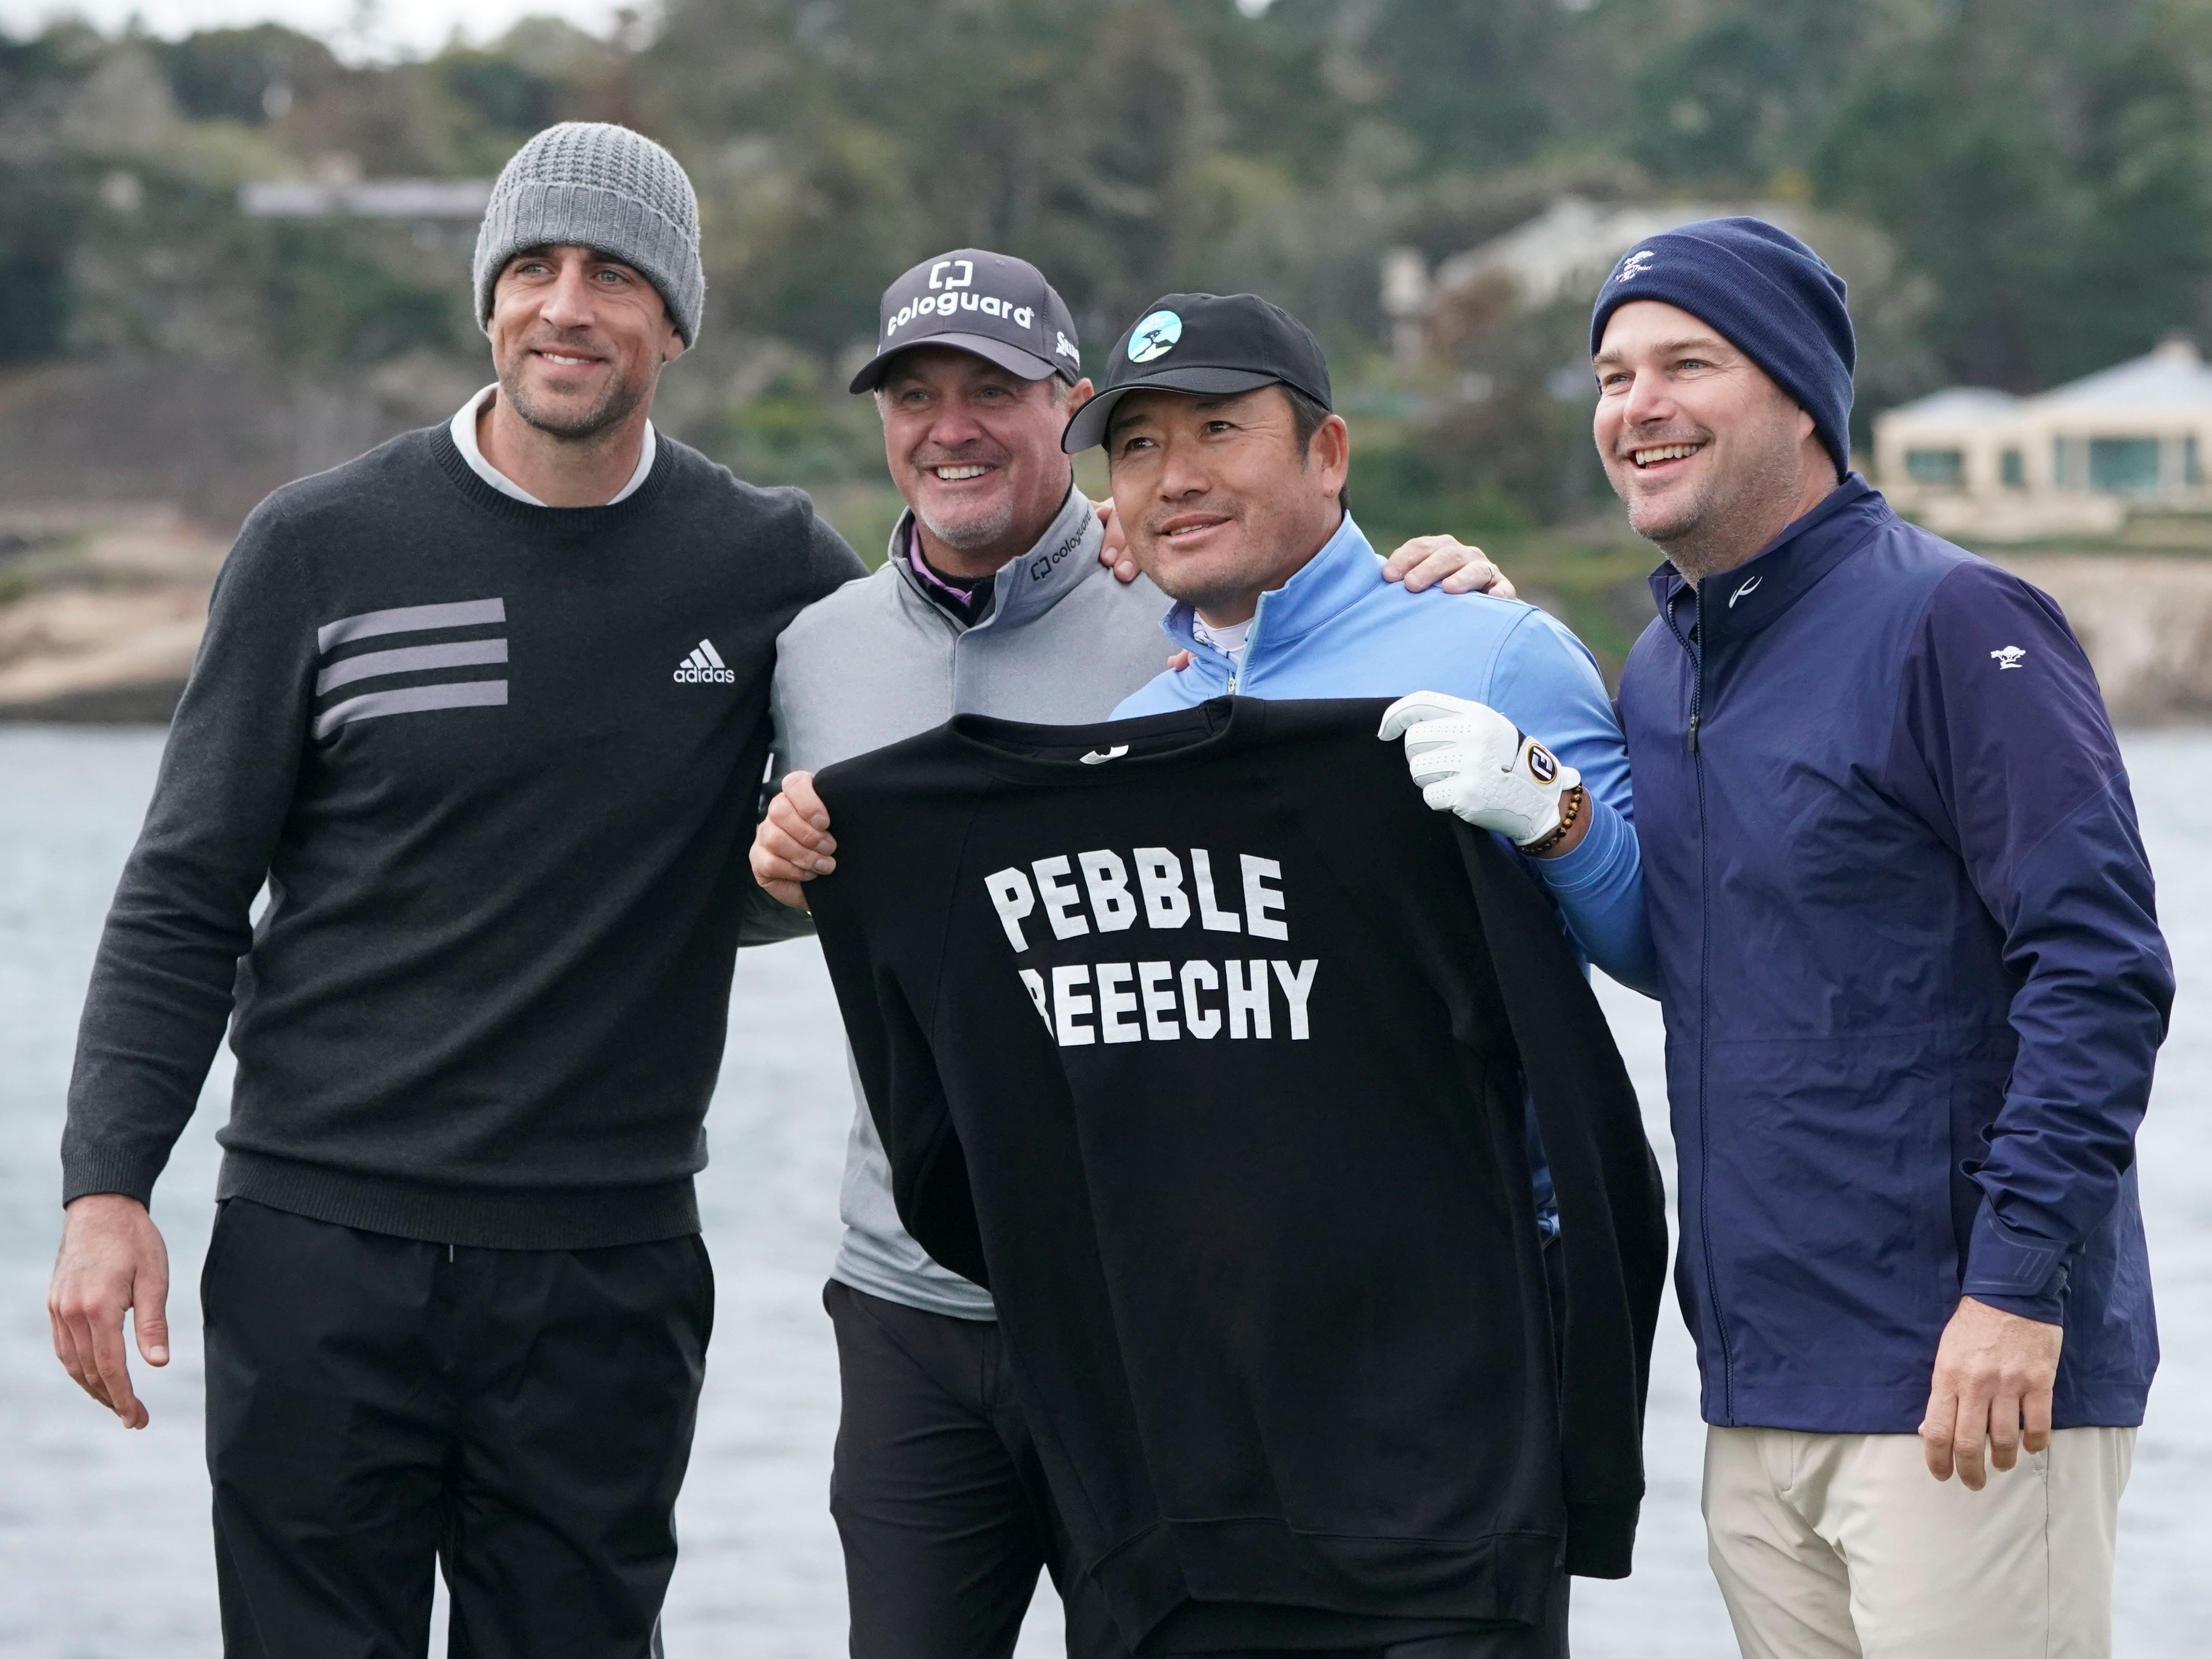 (From left to right) Green Bay Packers quarterback Aaron Rodgers, golfers Jerry Kelly and Ho-sung Choi, and actor Chris O'Donnell pose on the 18th tee box during the third round.